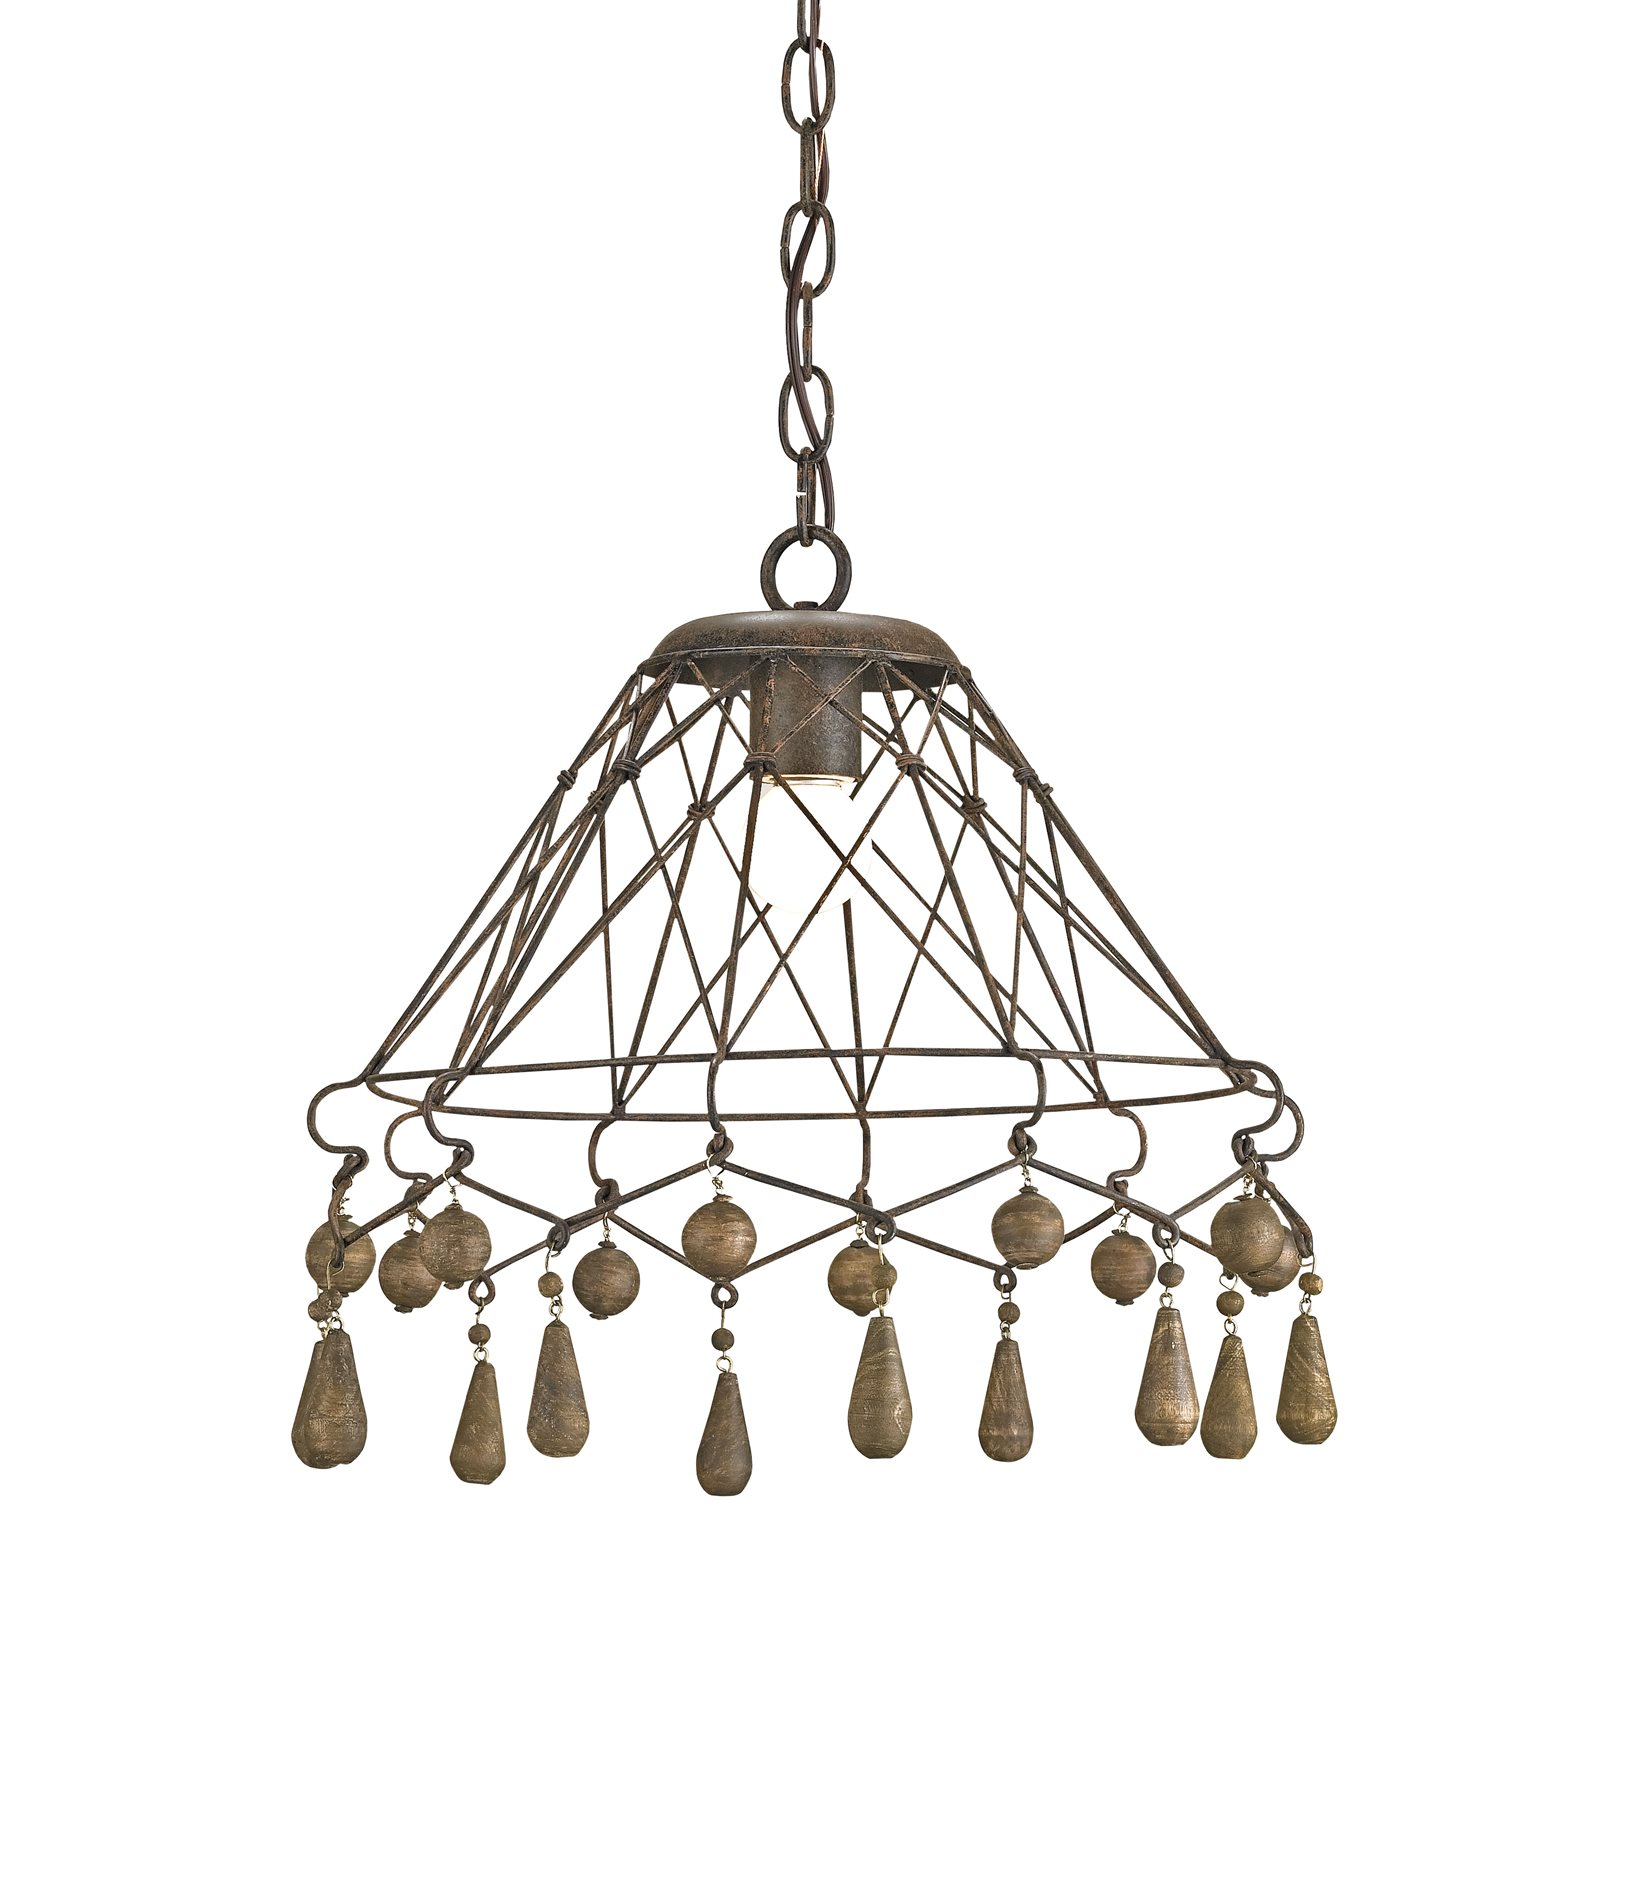 Currey And Company Manuscript Pendant: Currey And Company 9416 Tinker Traditional Pendant Light